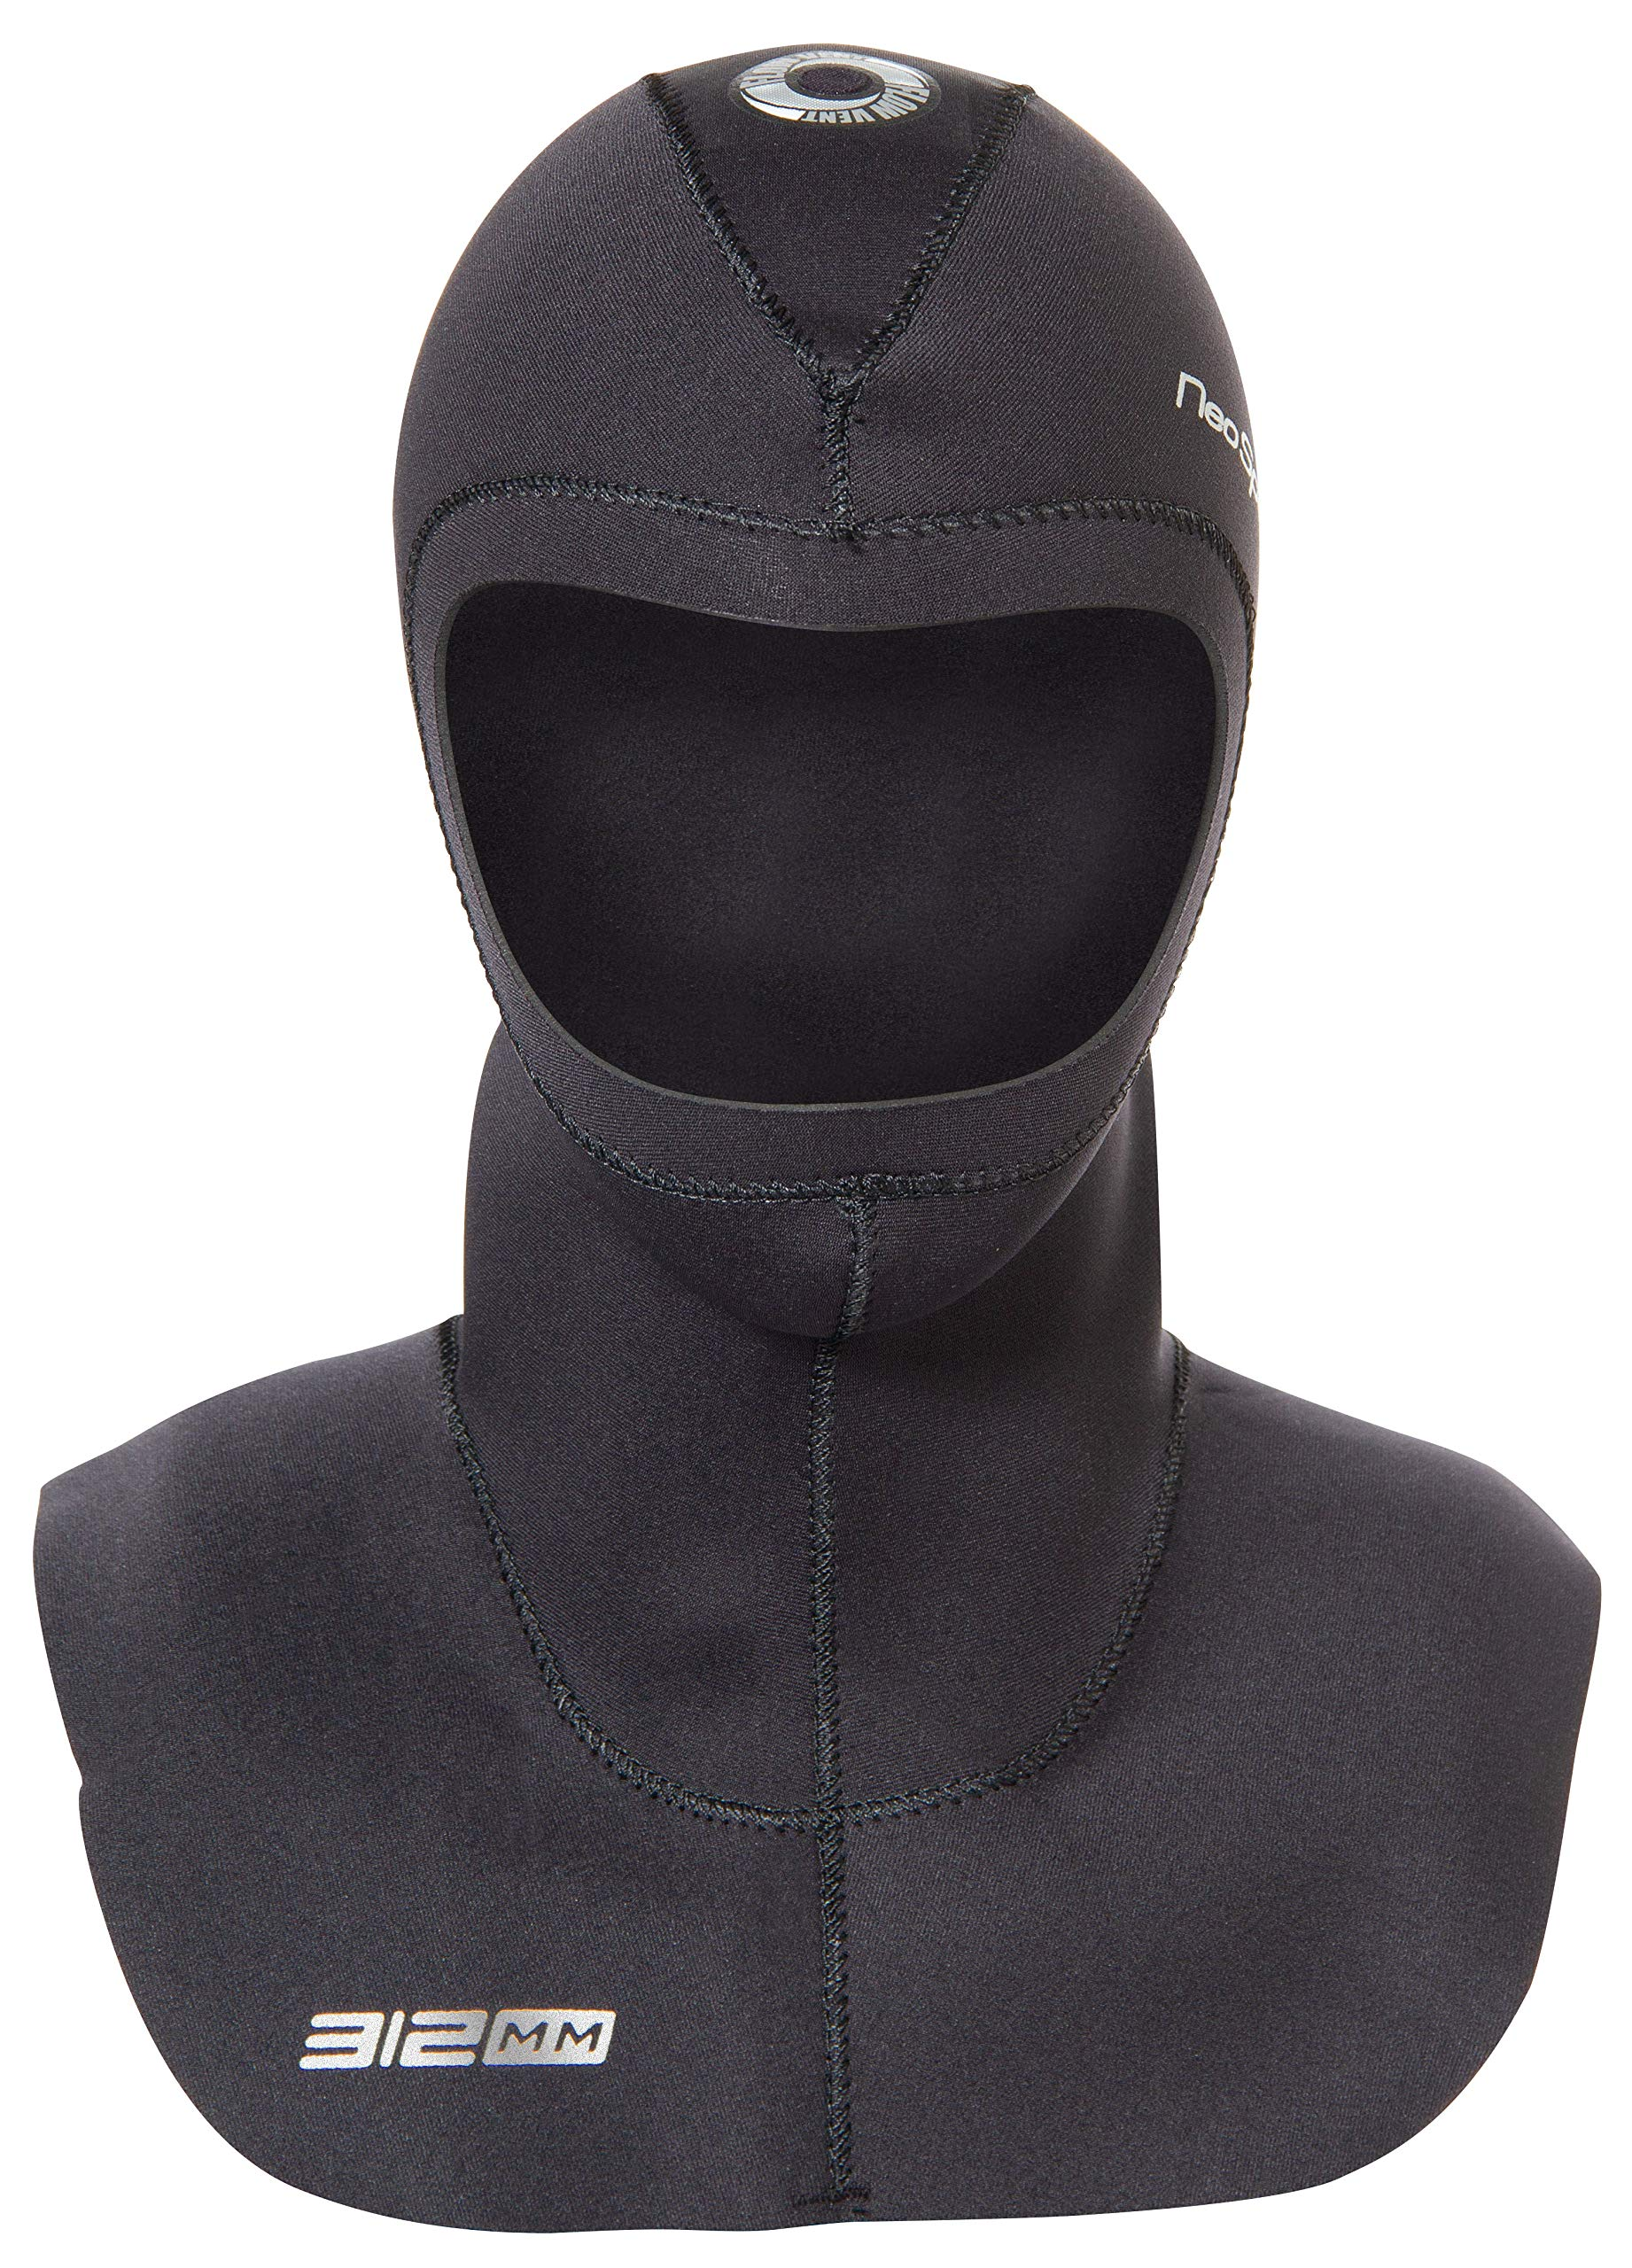 Neo Sport Multi-Density Wetsuit Hood available in three thicknesses 3/2MM - 5/3MM - 7/5MM with Flow Vent to eliminate trapped air. Anatomical fit. Skin Neoprene face seal which can be trimmed by owner for a custom fit